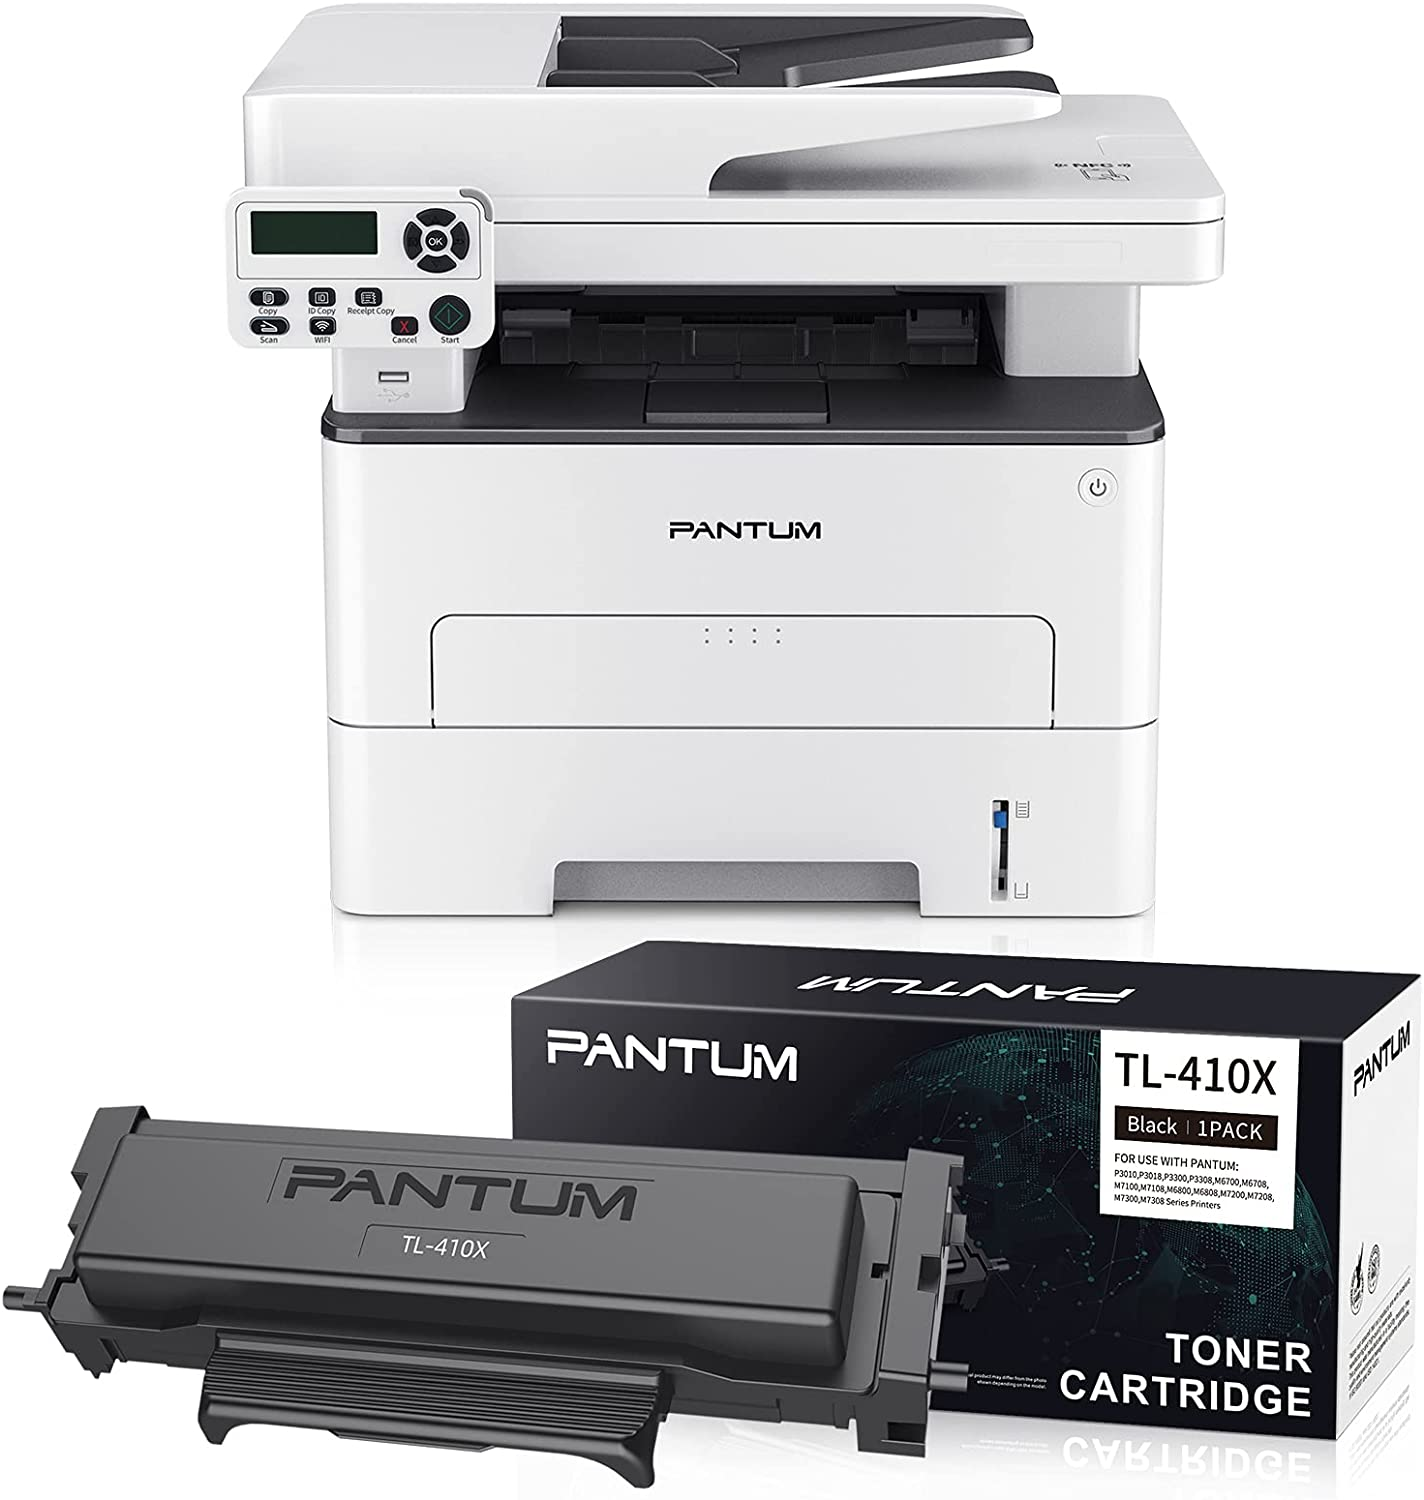 Pantum M7102DW Lasdr Printer Scanner Copier 3 in 1, Wireless and Auto Duplex Printing, with 1 Pack TL-410X 6000 Pages Yield Toner Cartridge